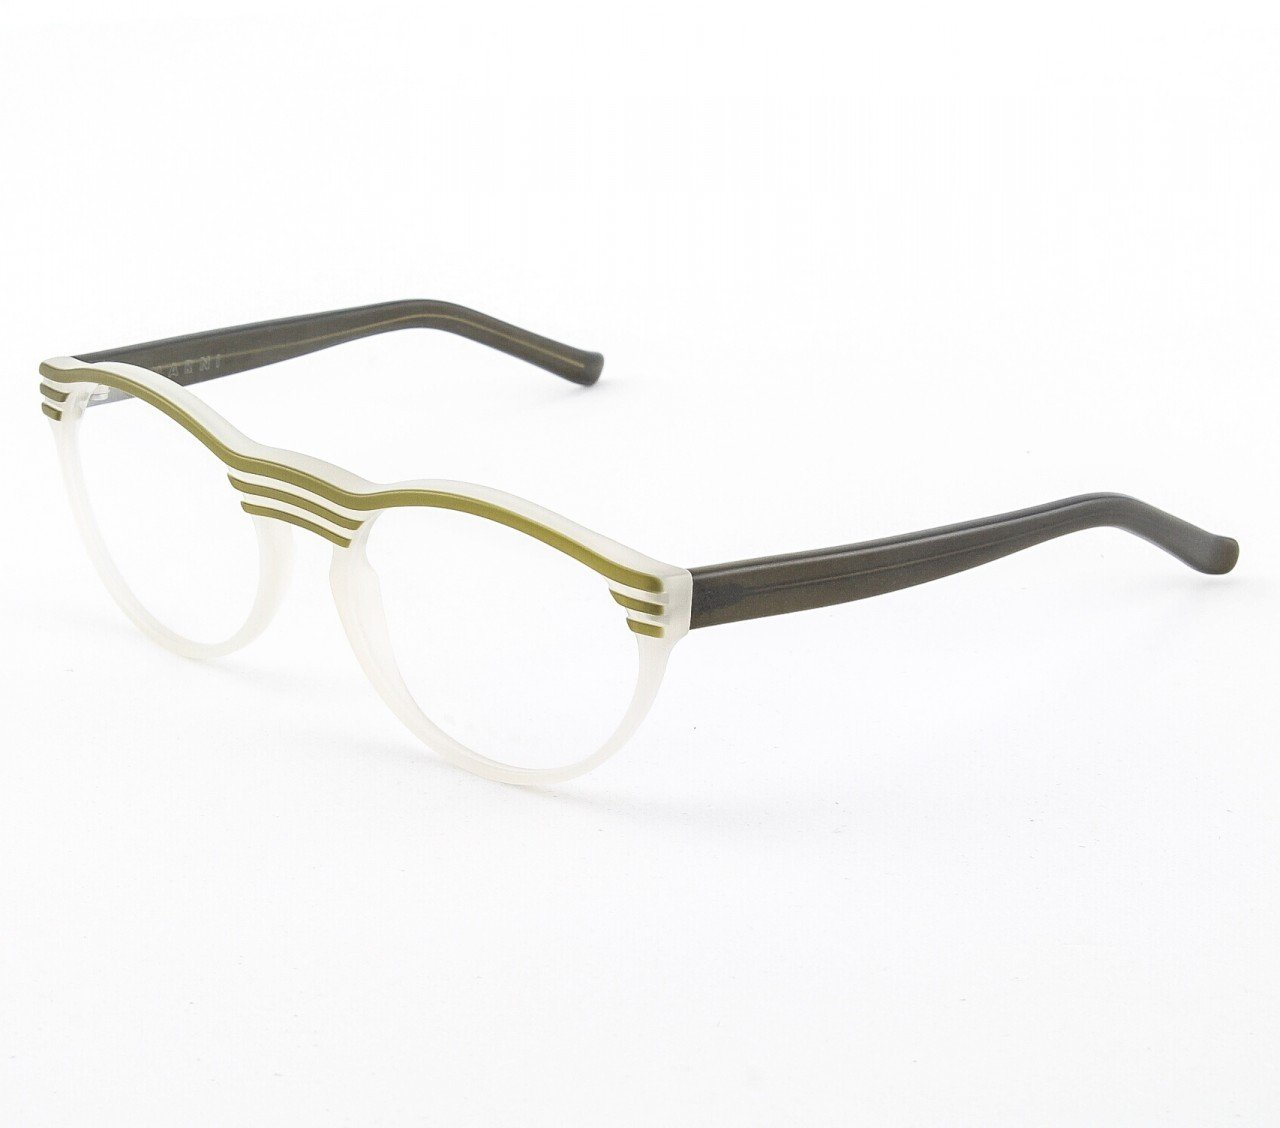 Marni MA688 Eyeglasses Col. 03 Frosted Light Khaki with Green Accents and Clear Lenses